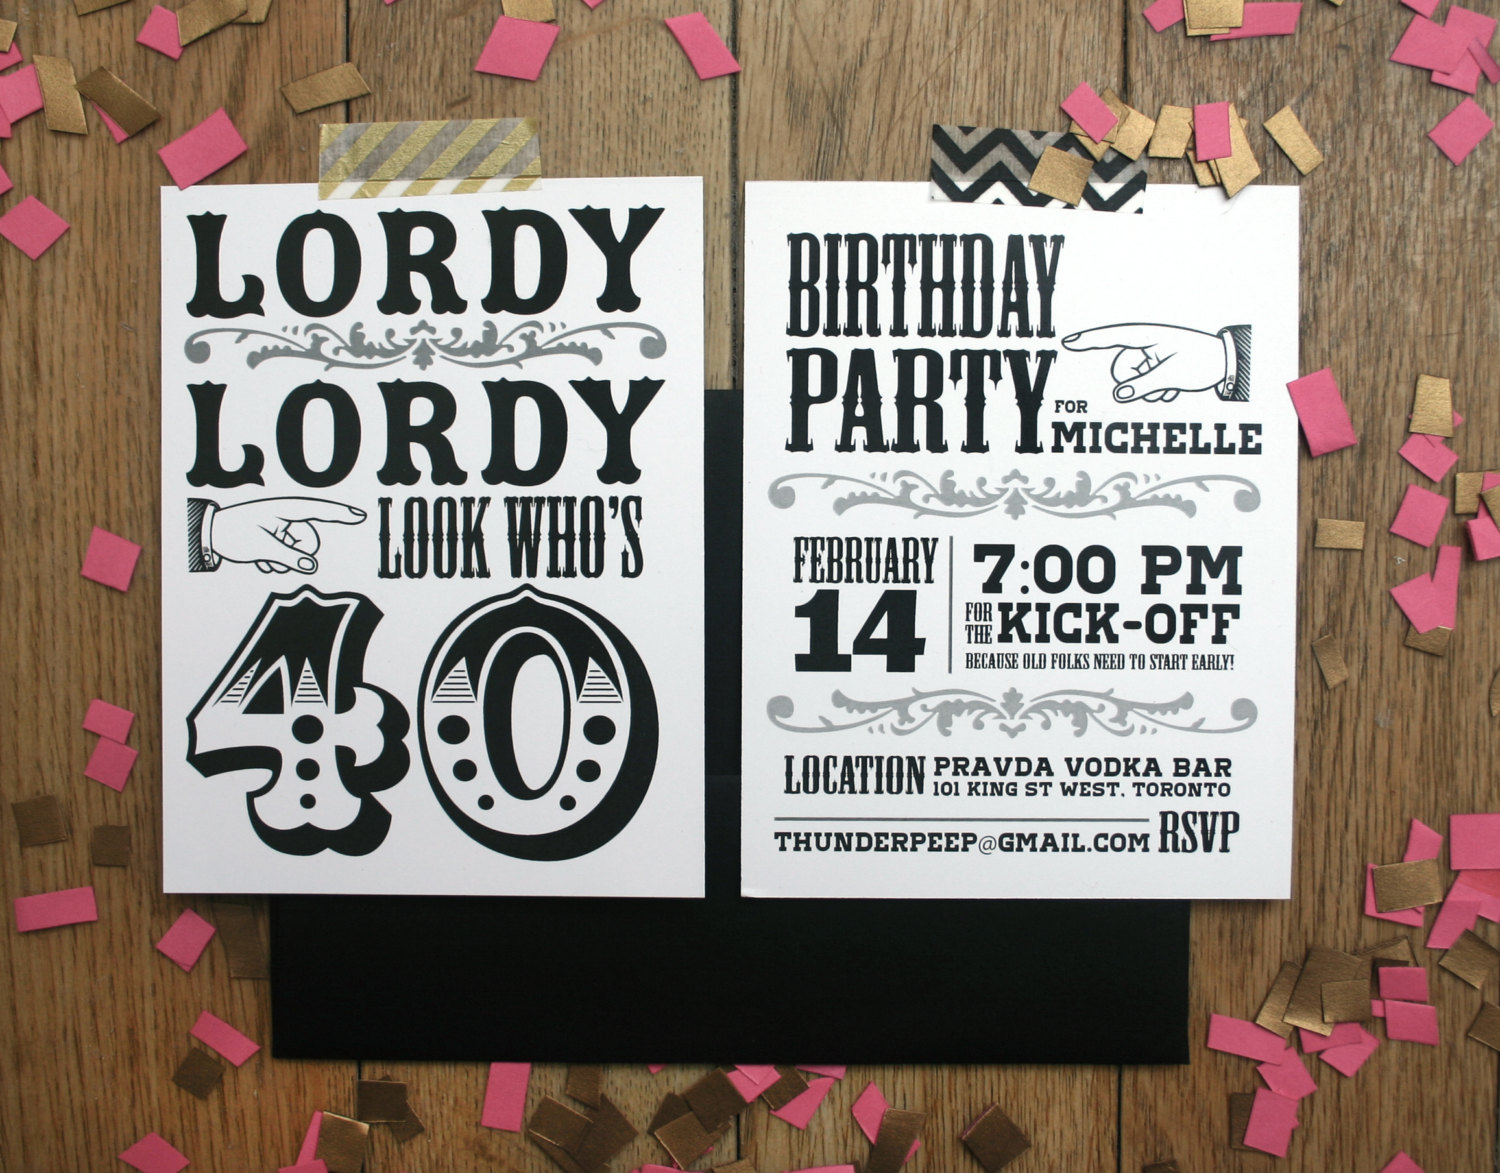 bday party invitation mail%0A Maryland Map Calvert County